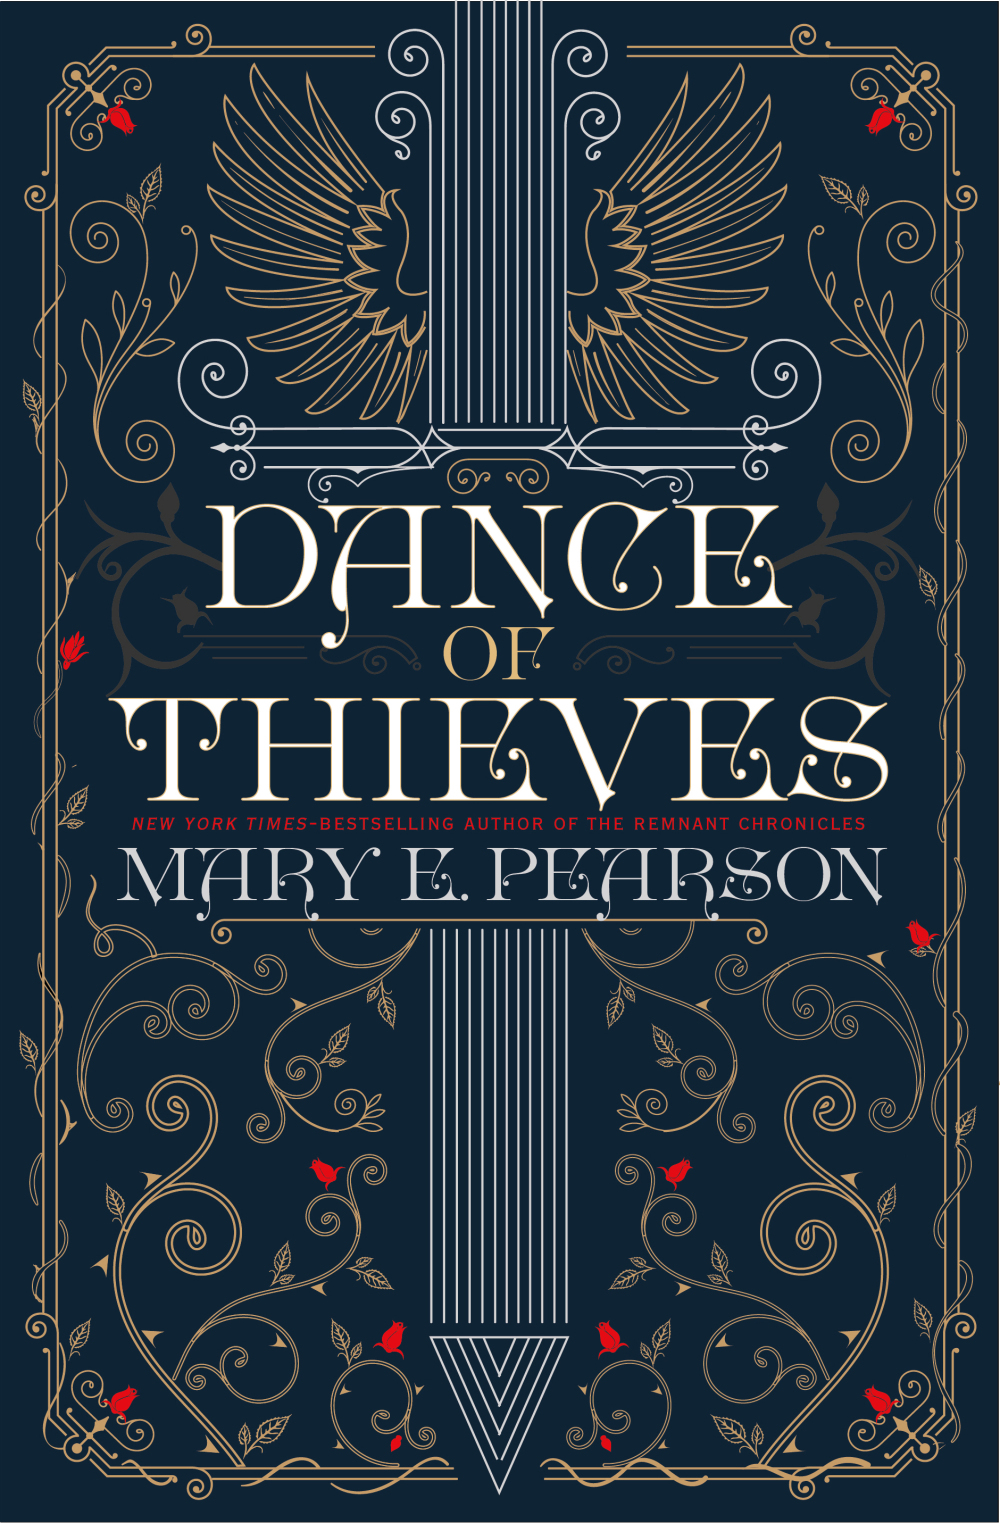 dance-of-thieves-mary-e-pearson.jpg